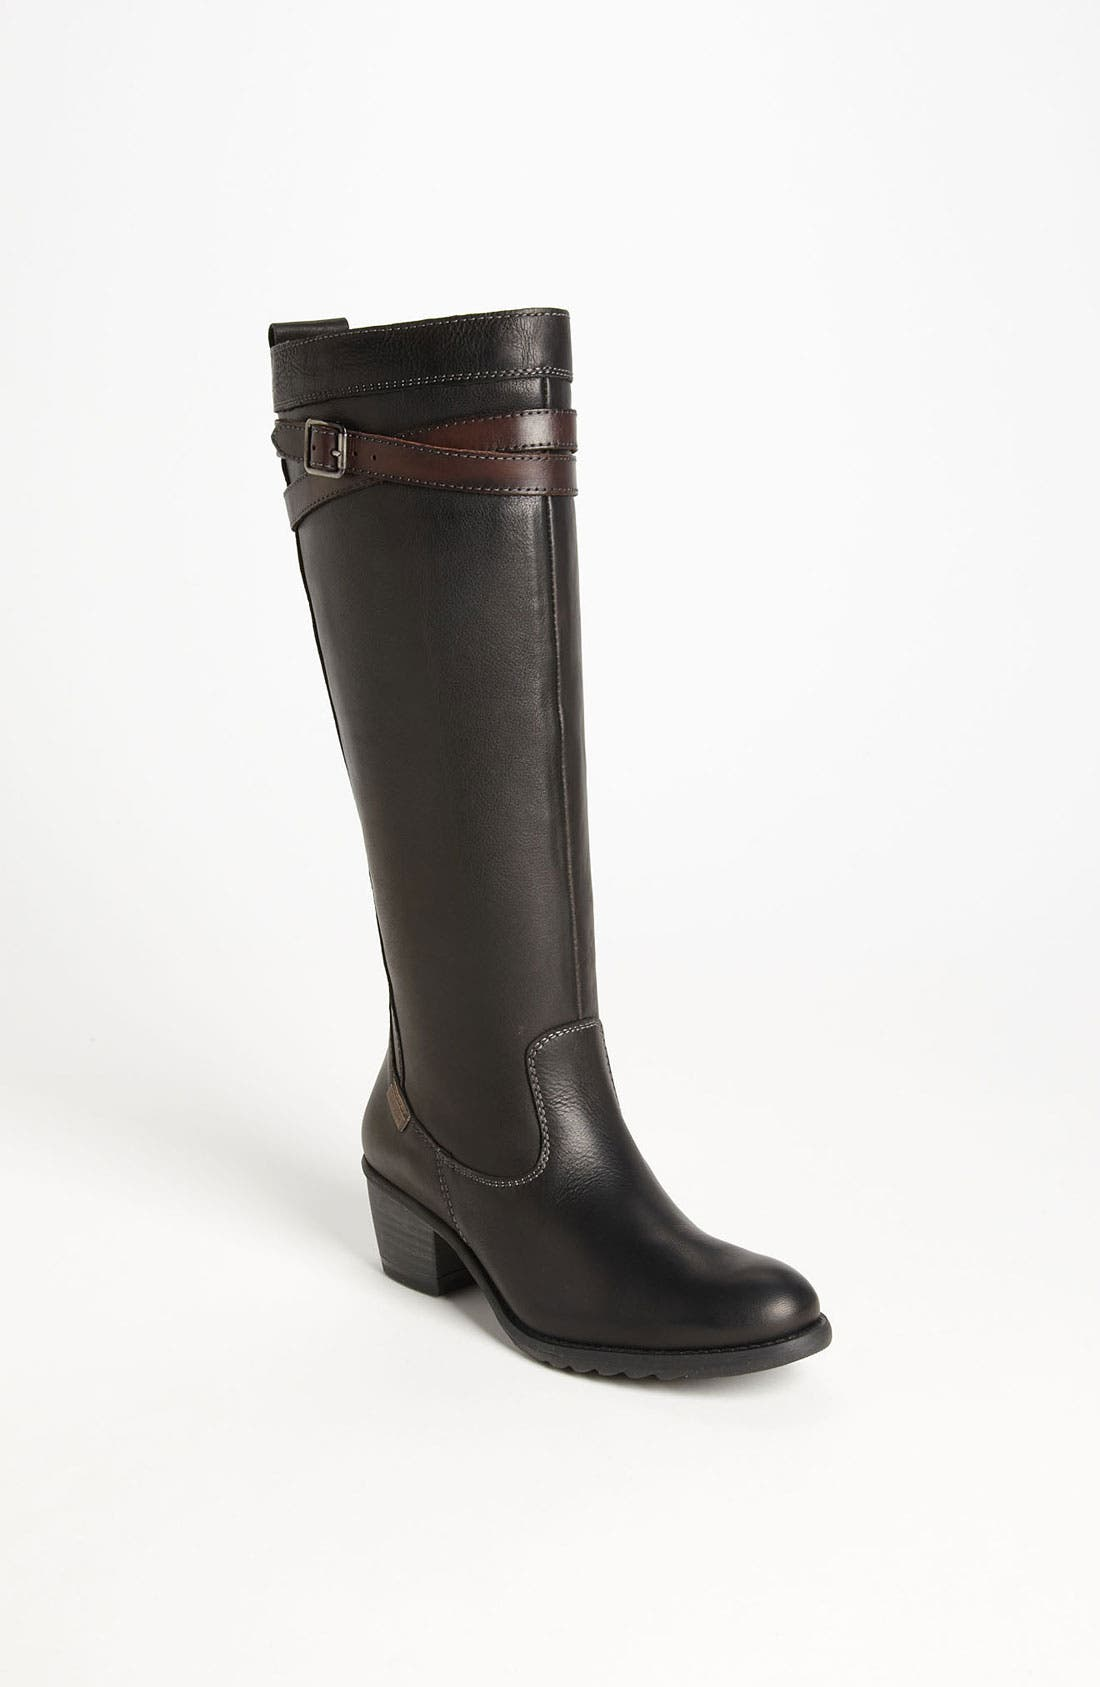 Main Image - PIKOLINOS 'Andorra' Tall Boot